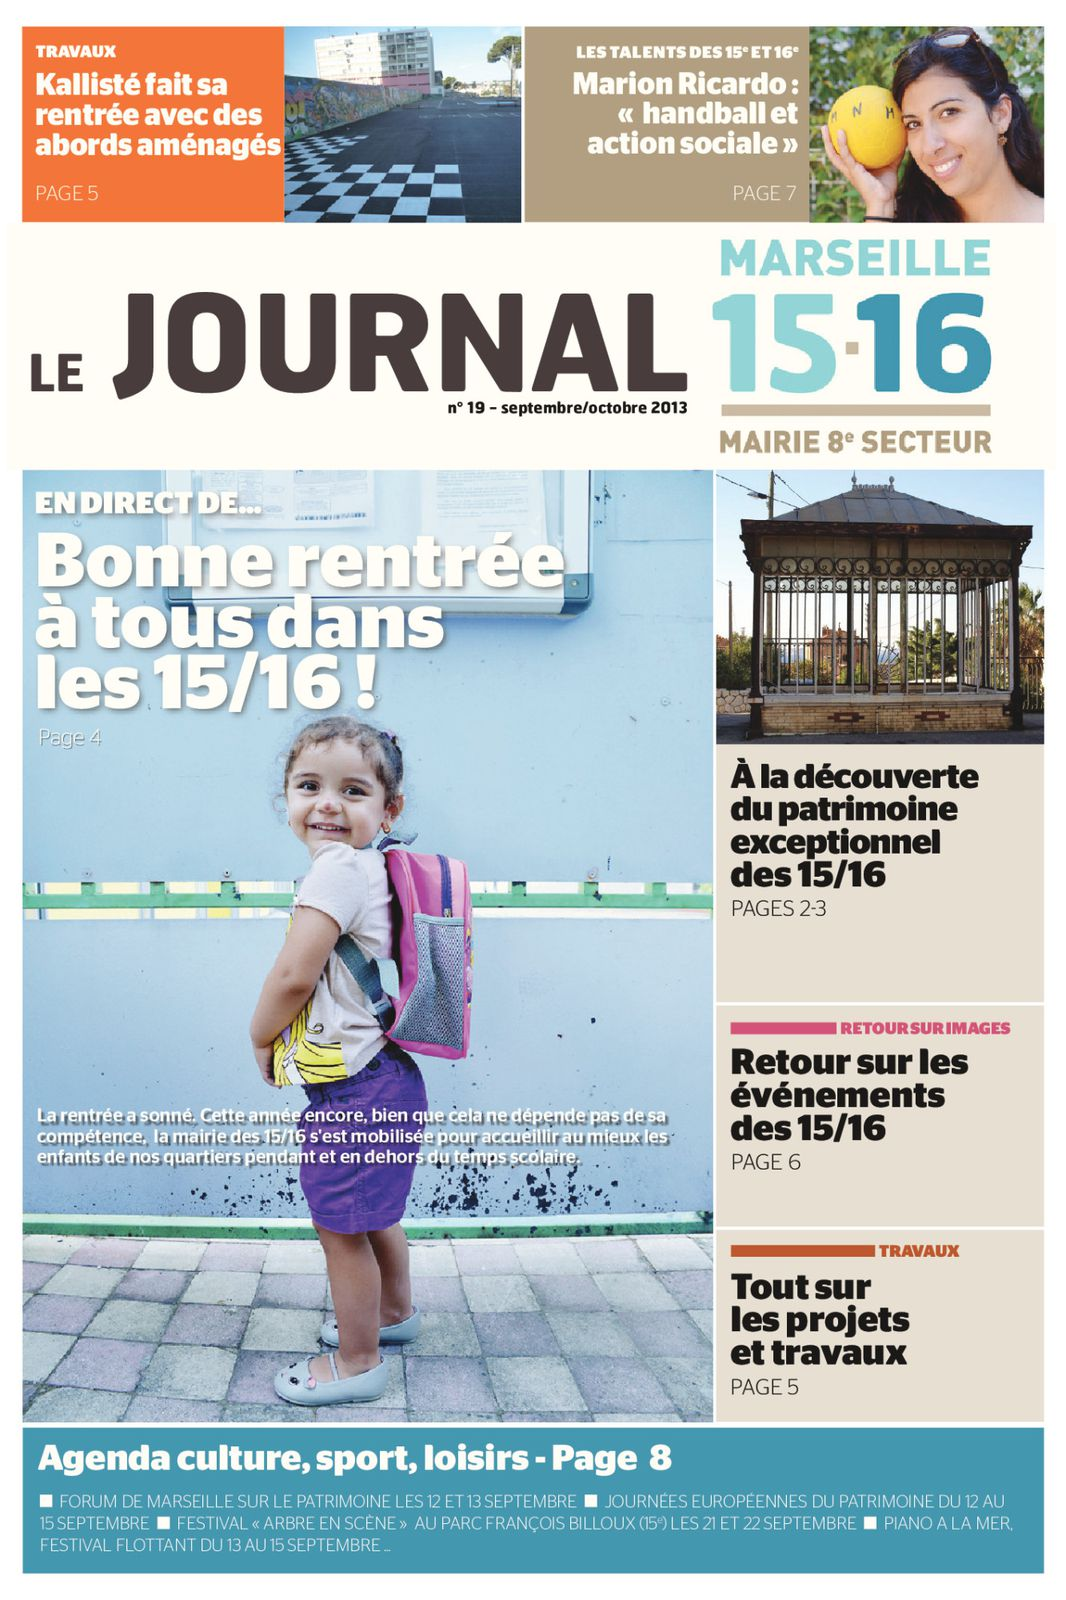 Le Journal du 15-16 Septembre Octobre 2013